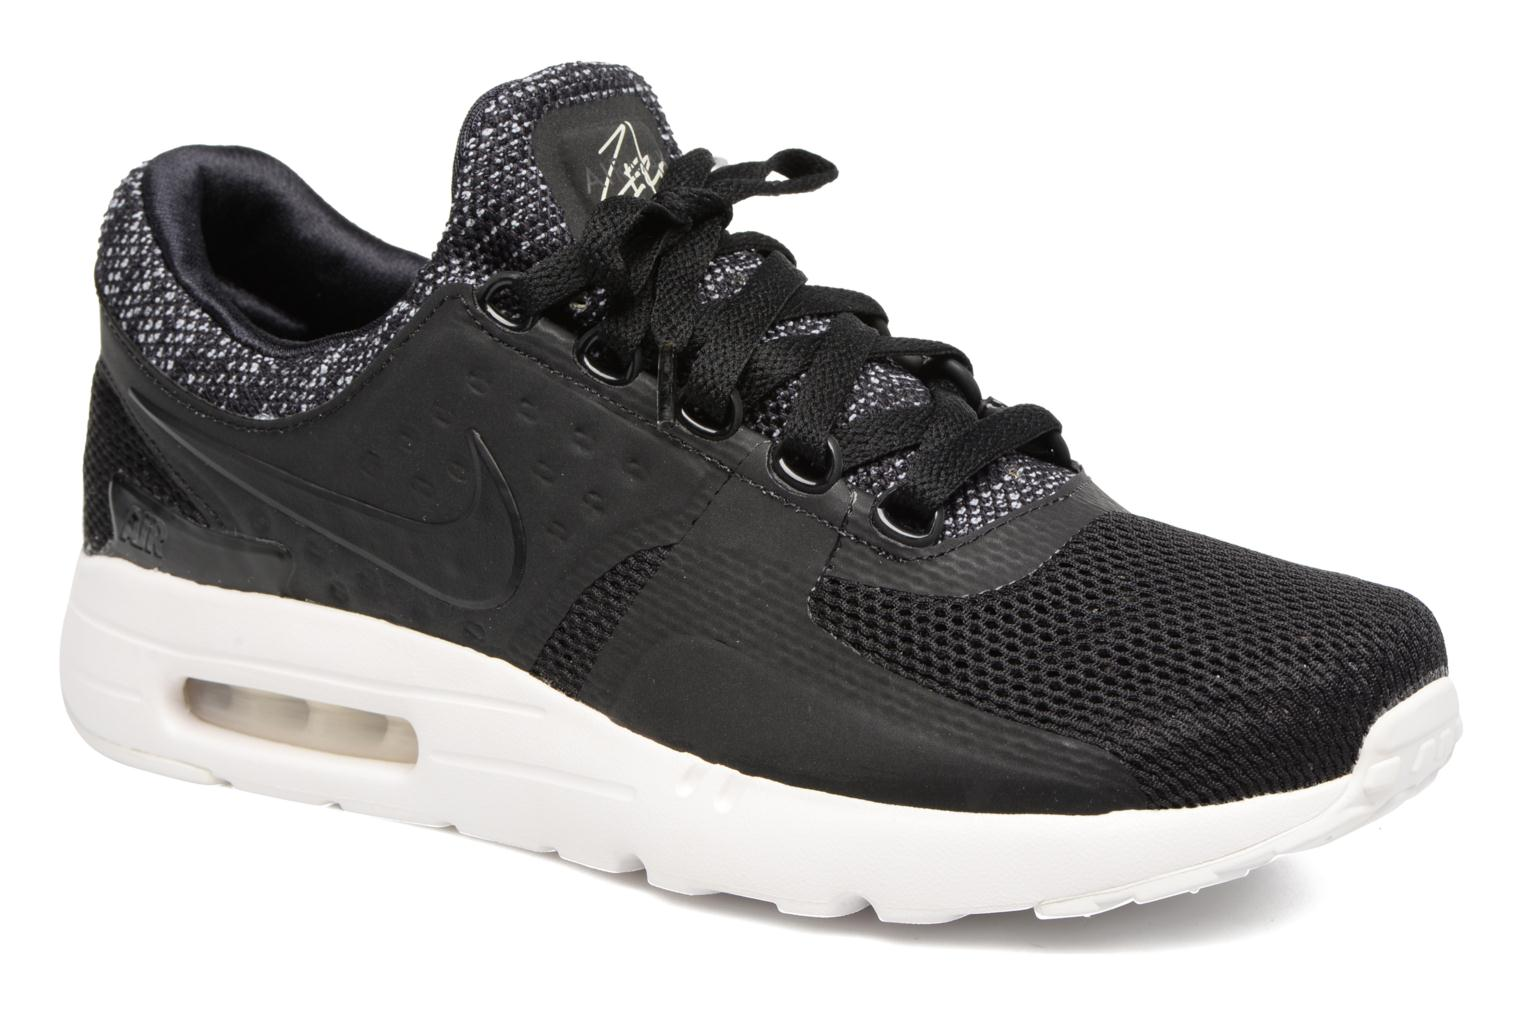 903892-001 BLACK/BLACK-PALE GREY-ANTHRACITE